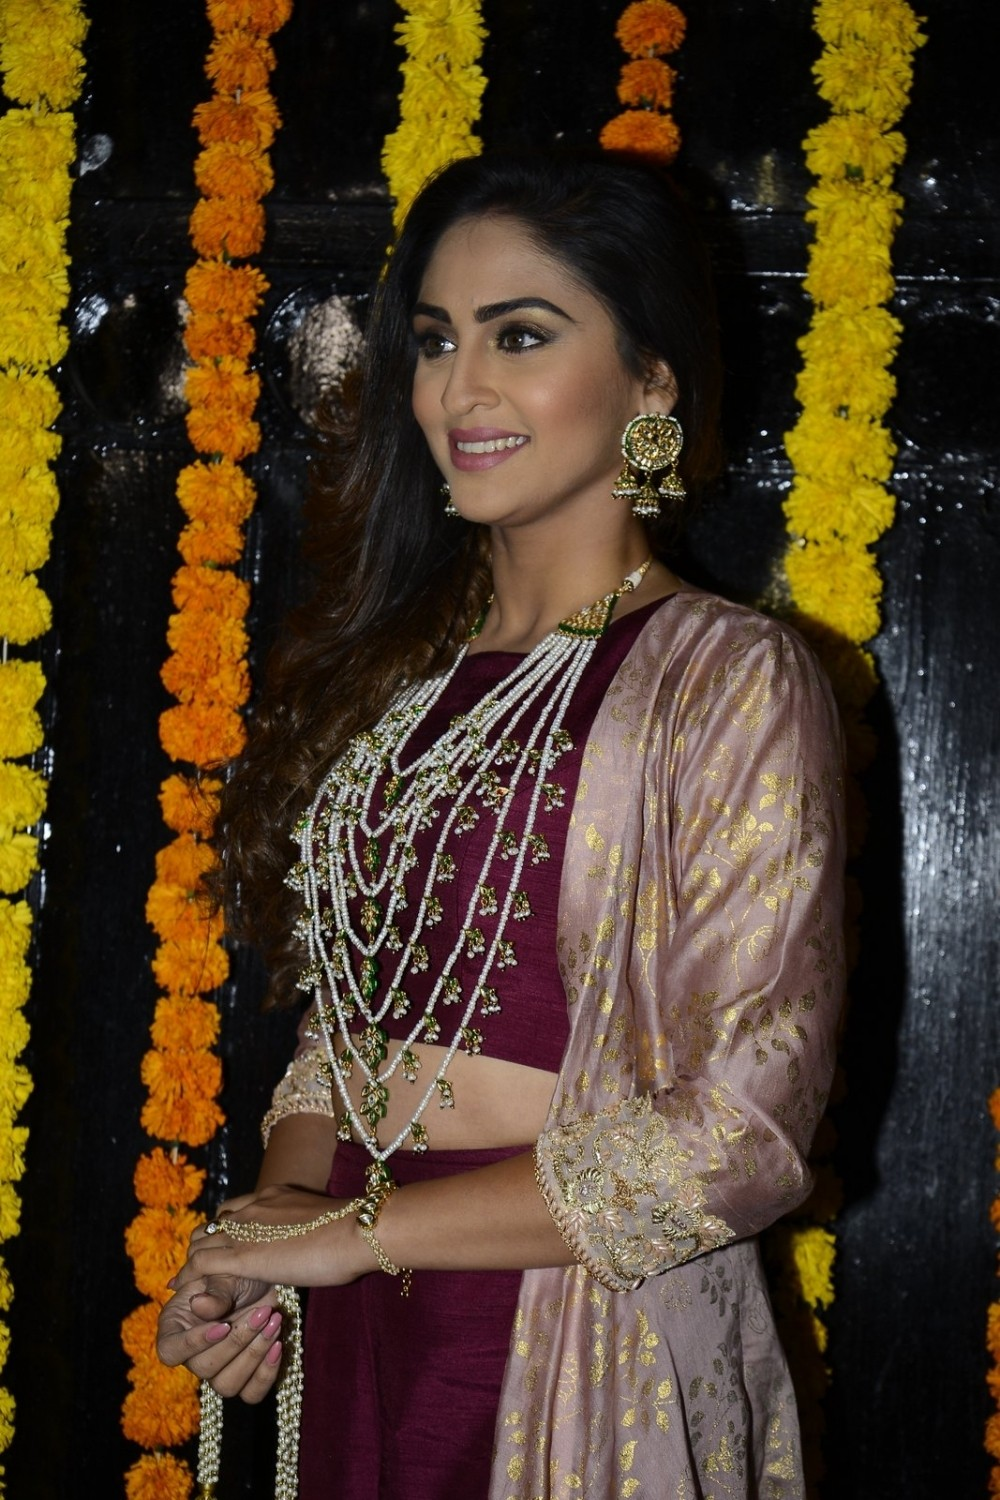 Krishika Lulla,Krystle D'Souza,Shraddha Kapoor,Sonakshi Sinha,Sunny Leone,Ekta Kapoor's Diwali party,Ekta Kapoor Diwali party,Ekta Kapoor Diwali party pics,Ekta Kapoor Diwali party images,Ekta Kapoor Diwali party photos,Ekta Kapoor Diwali party